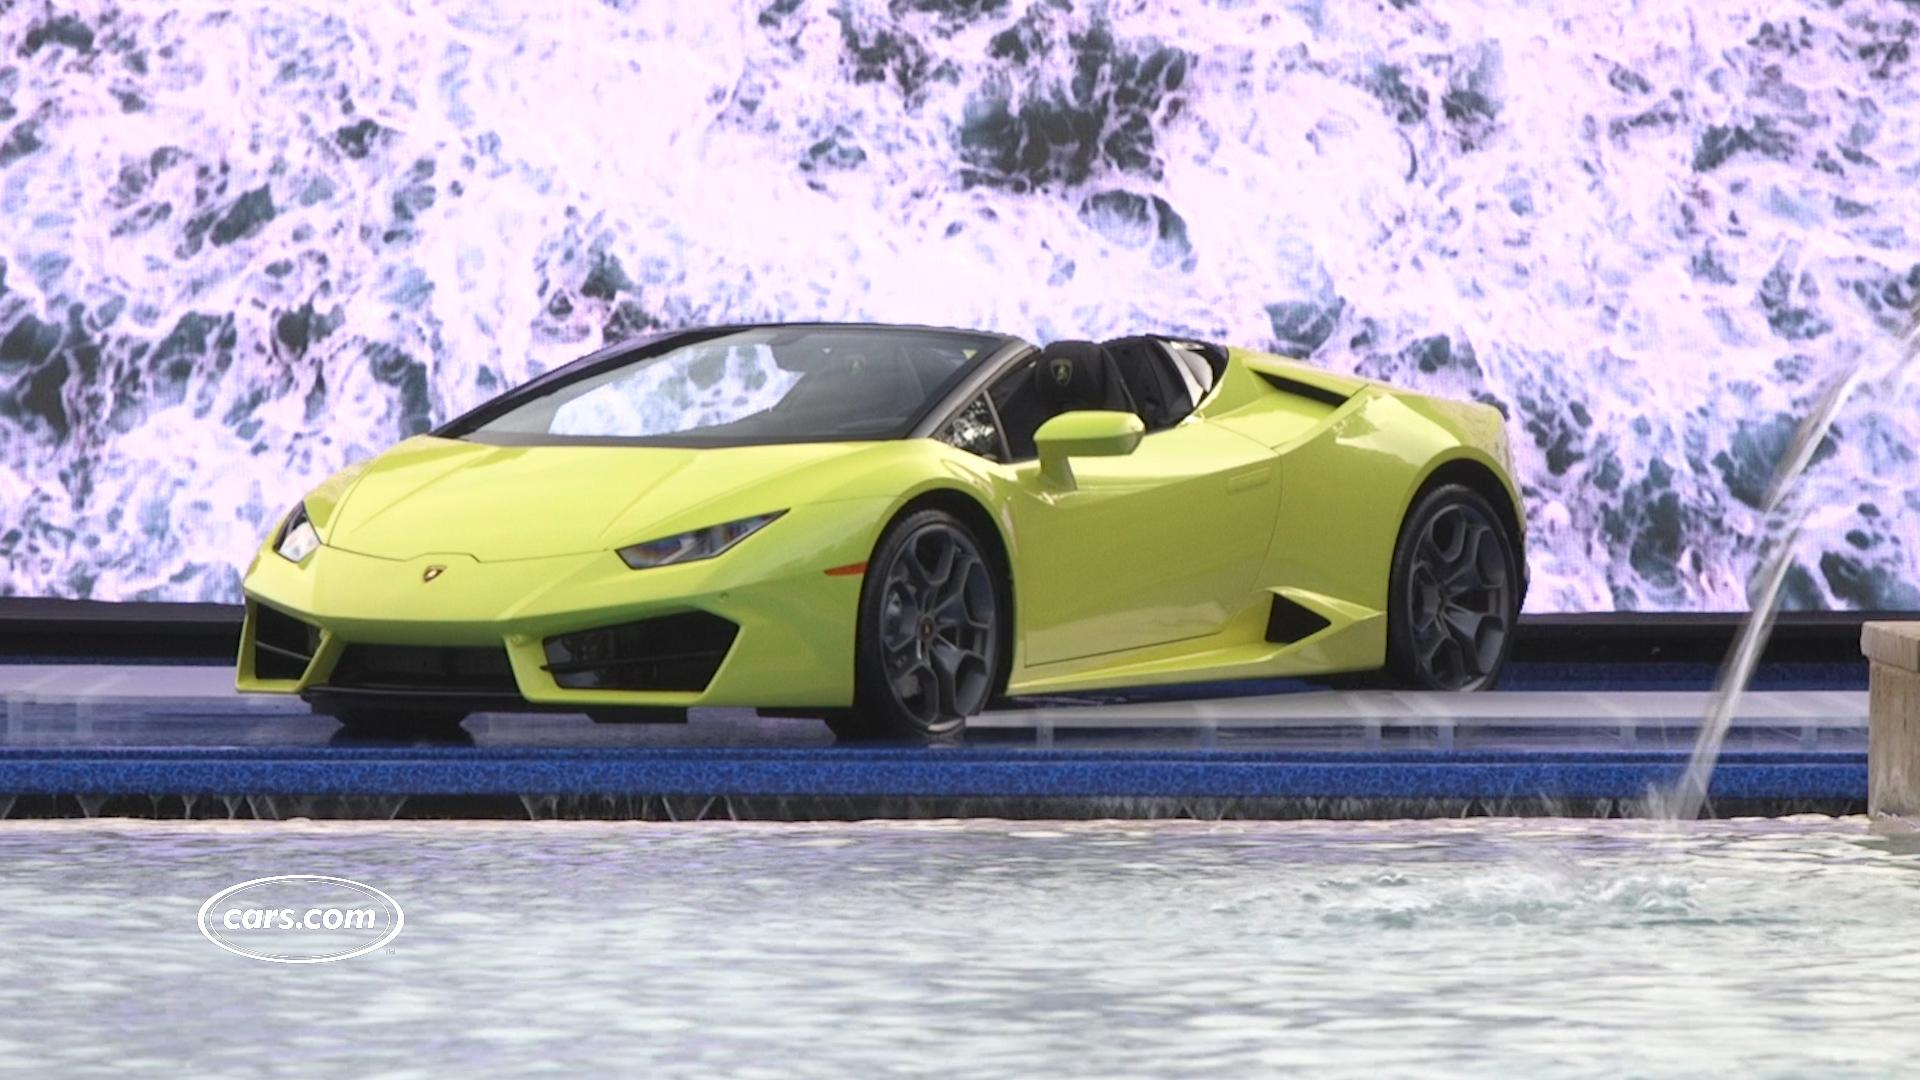 2017 Lamborghini Huracán RWD Spyder Review: First Impressions